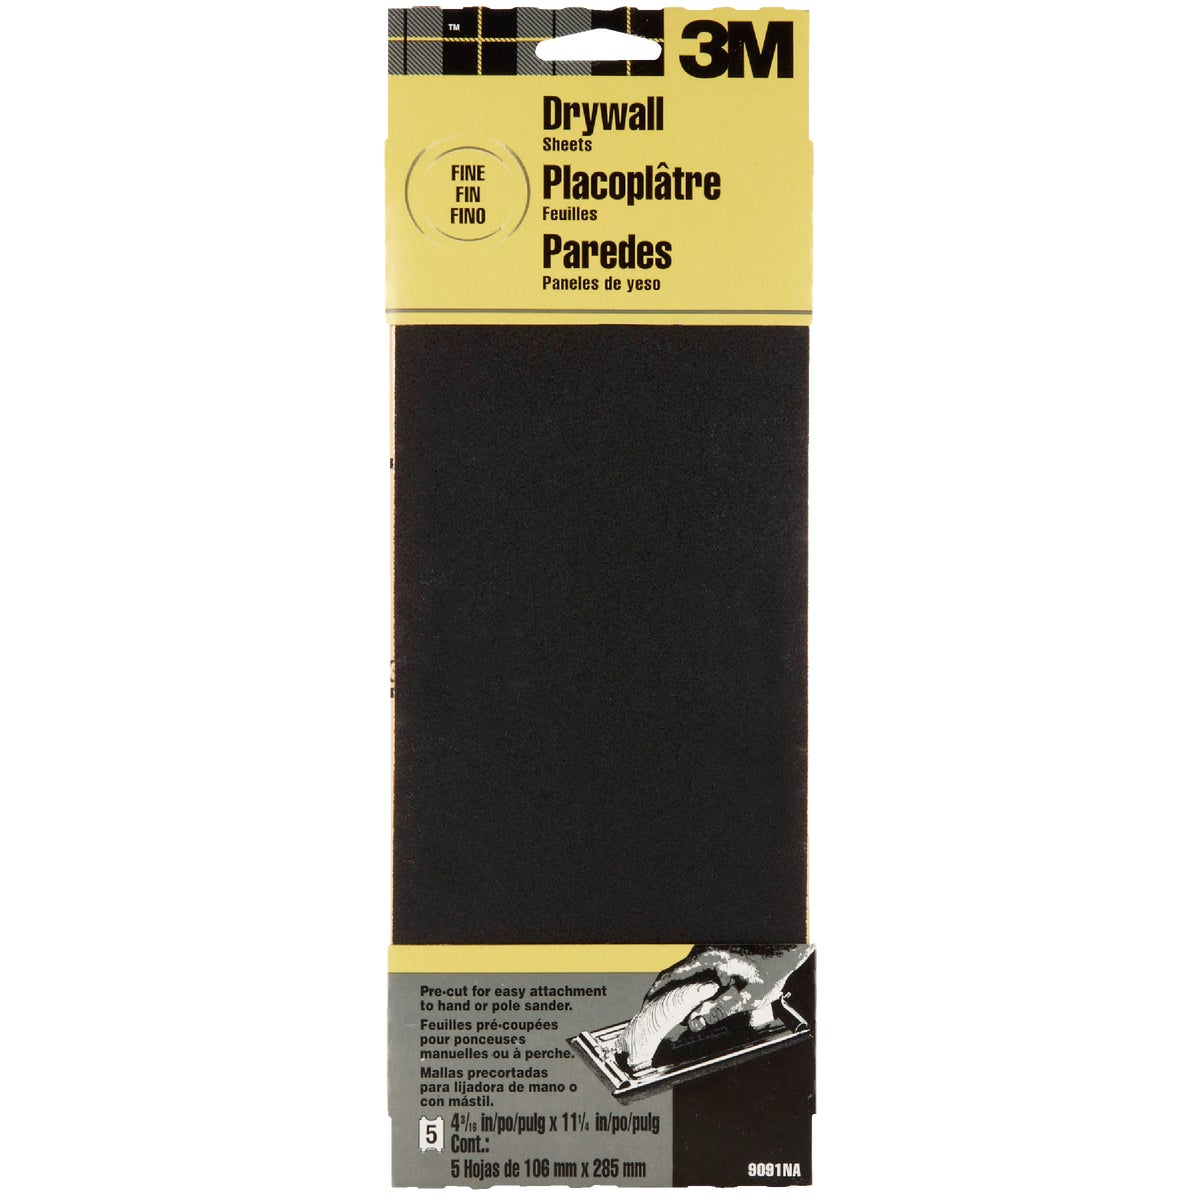 FINE DRYWALL SHEETS - 9091 by 3m Co